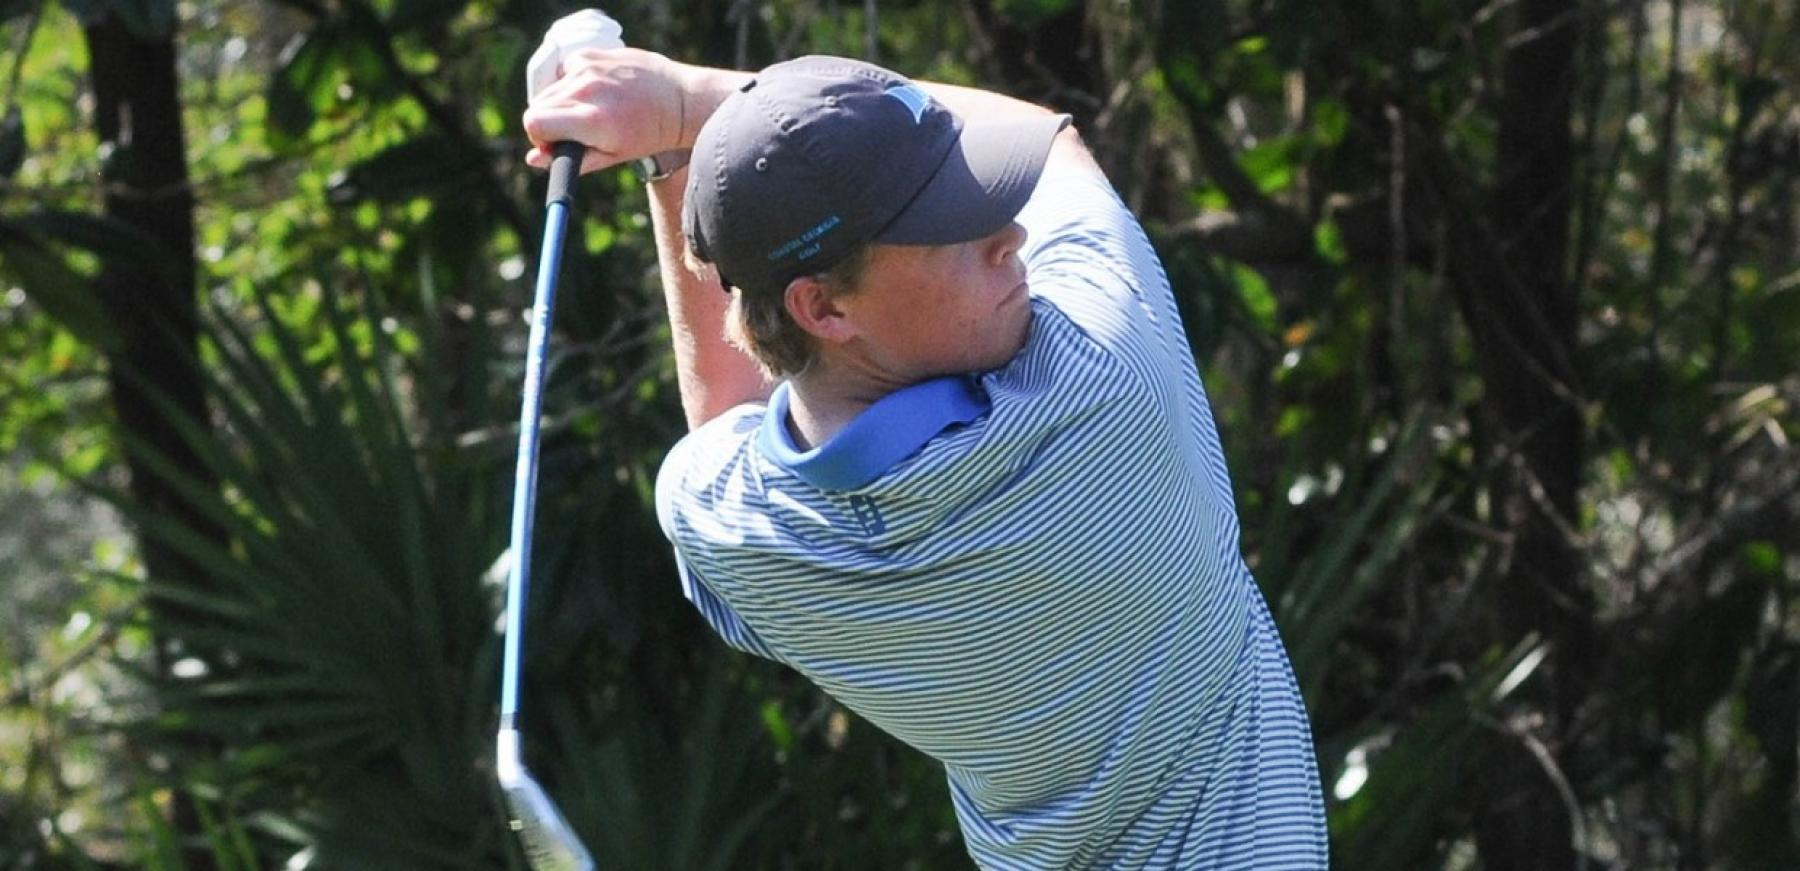 Men's golf ends up fifth at Innisbrook